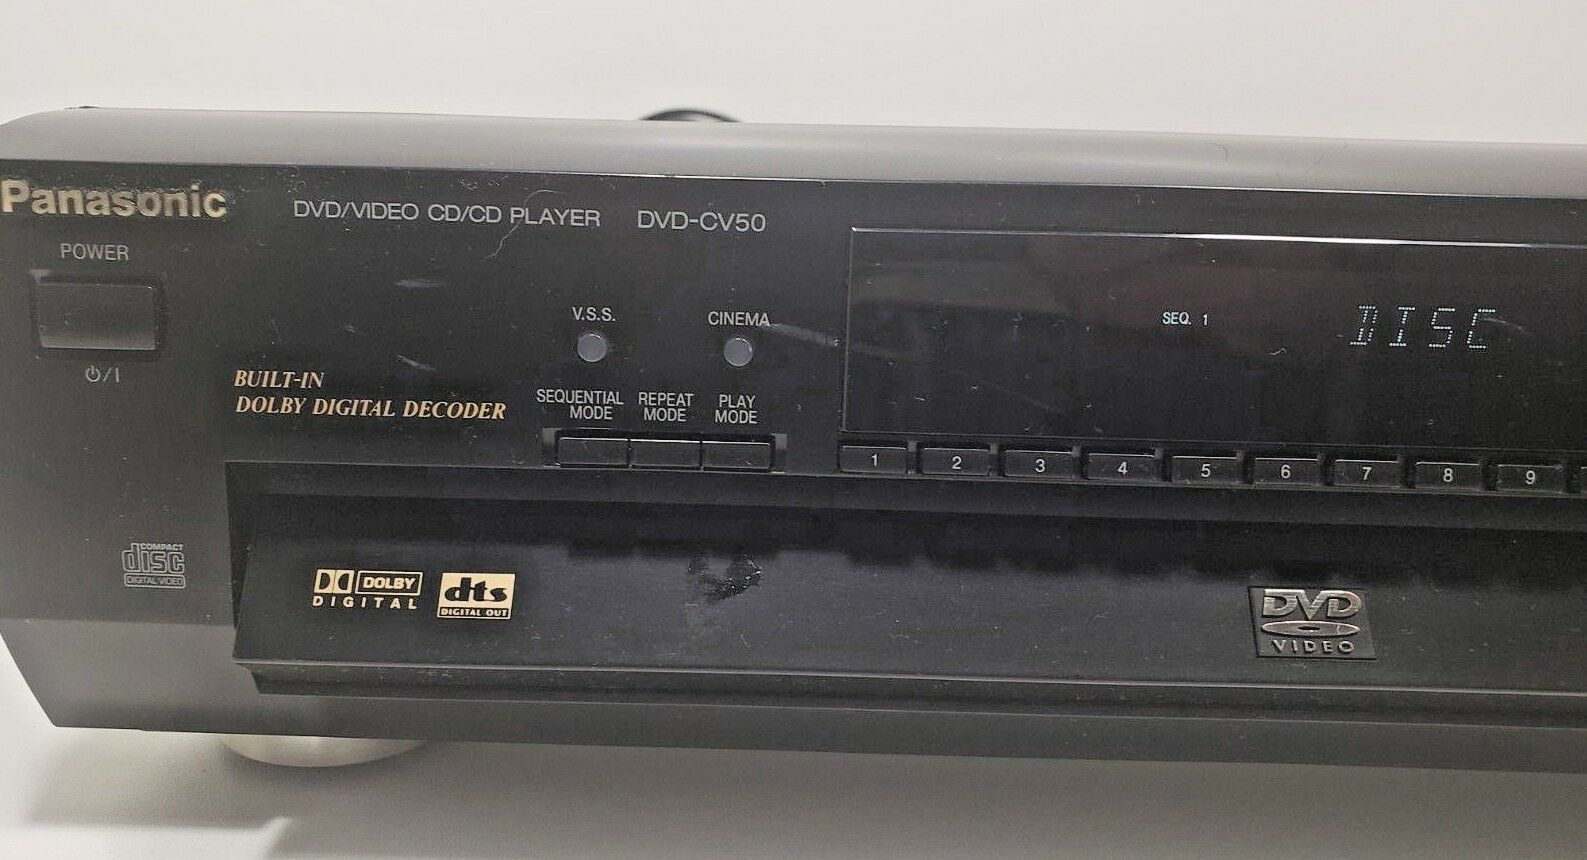 Panasonic DVD-CV50 DVD Video  CD/CD Player 5 Disc Changer..Tested W/Remote image 2